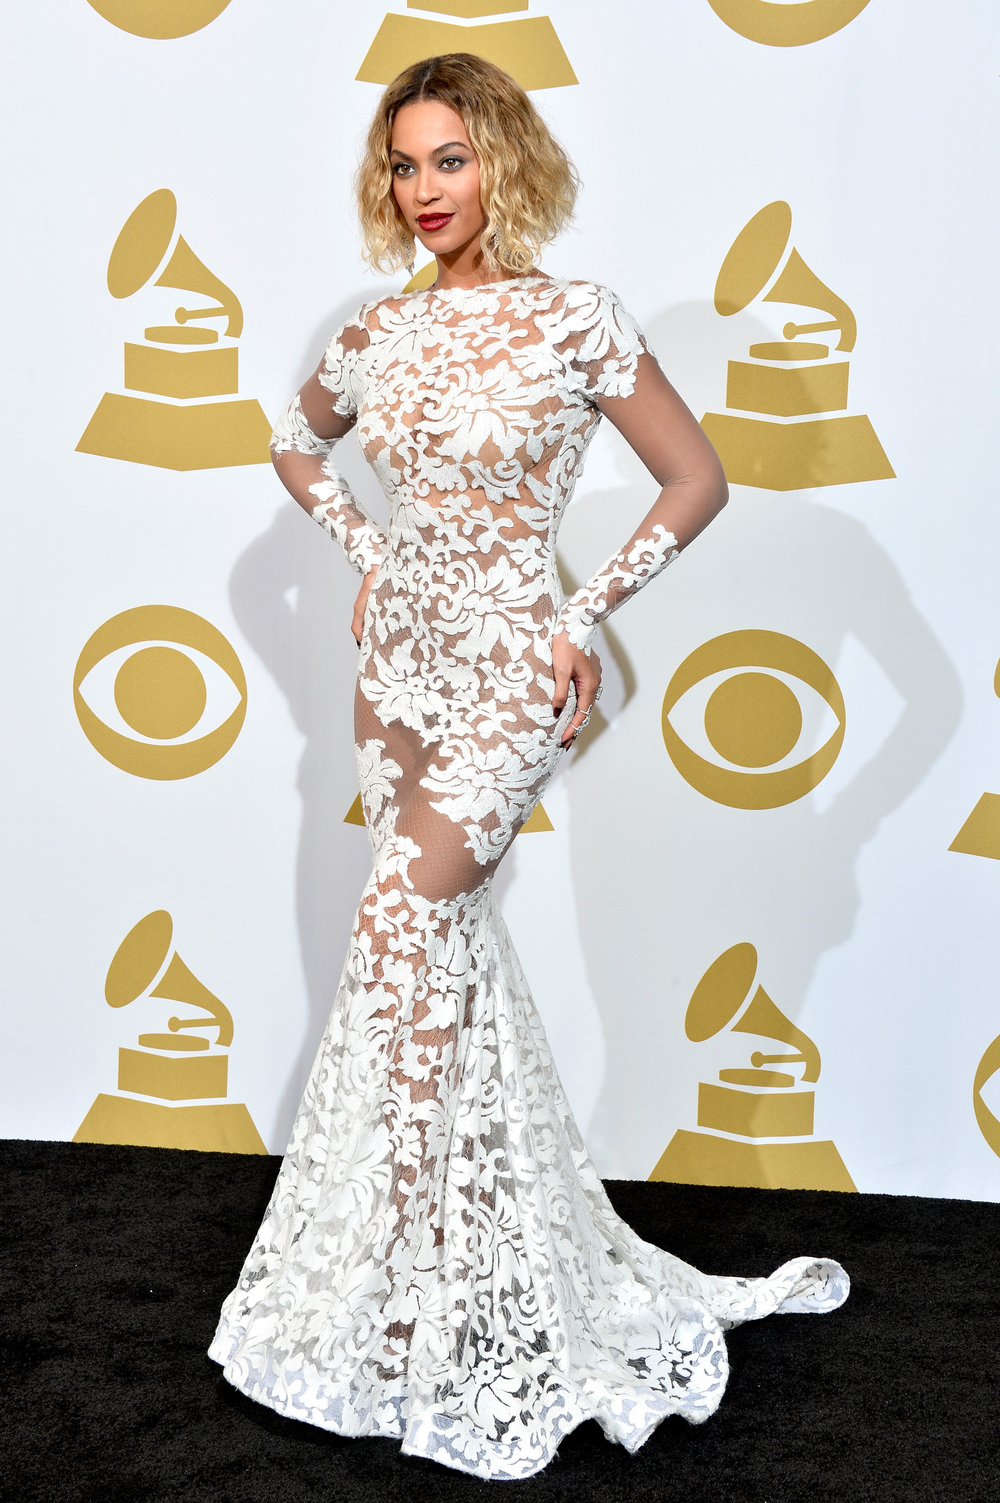 Beyoncé Wore $10 Million Worth of Lorraine Schwartz Diamonds at the 2014 Grammys